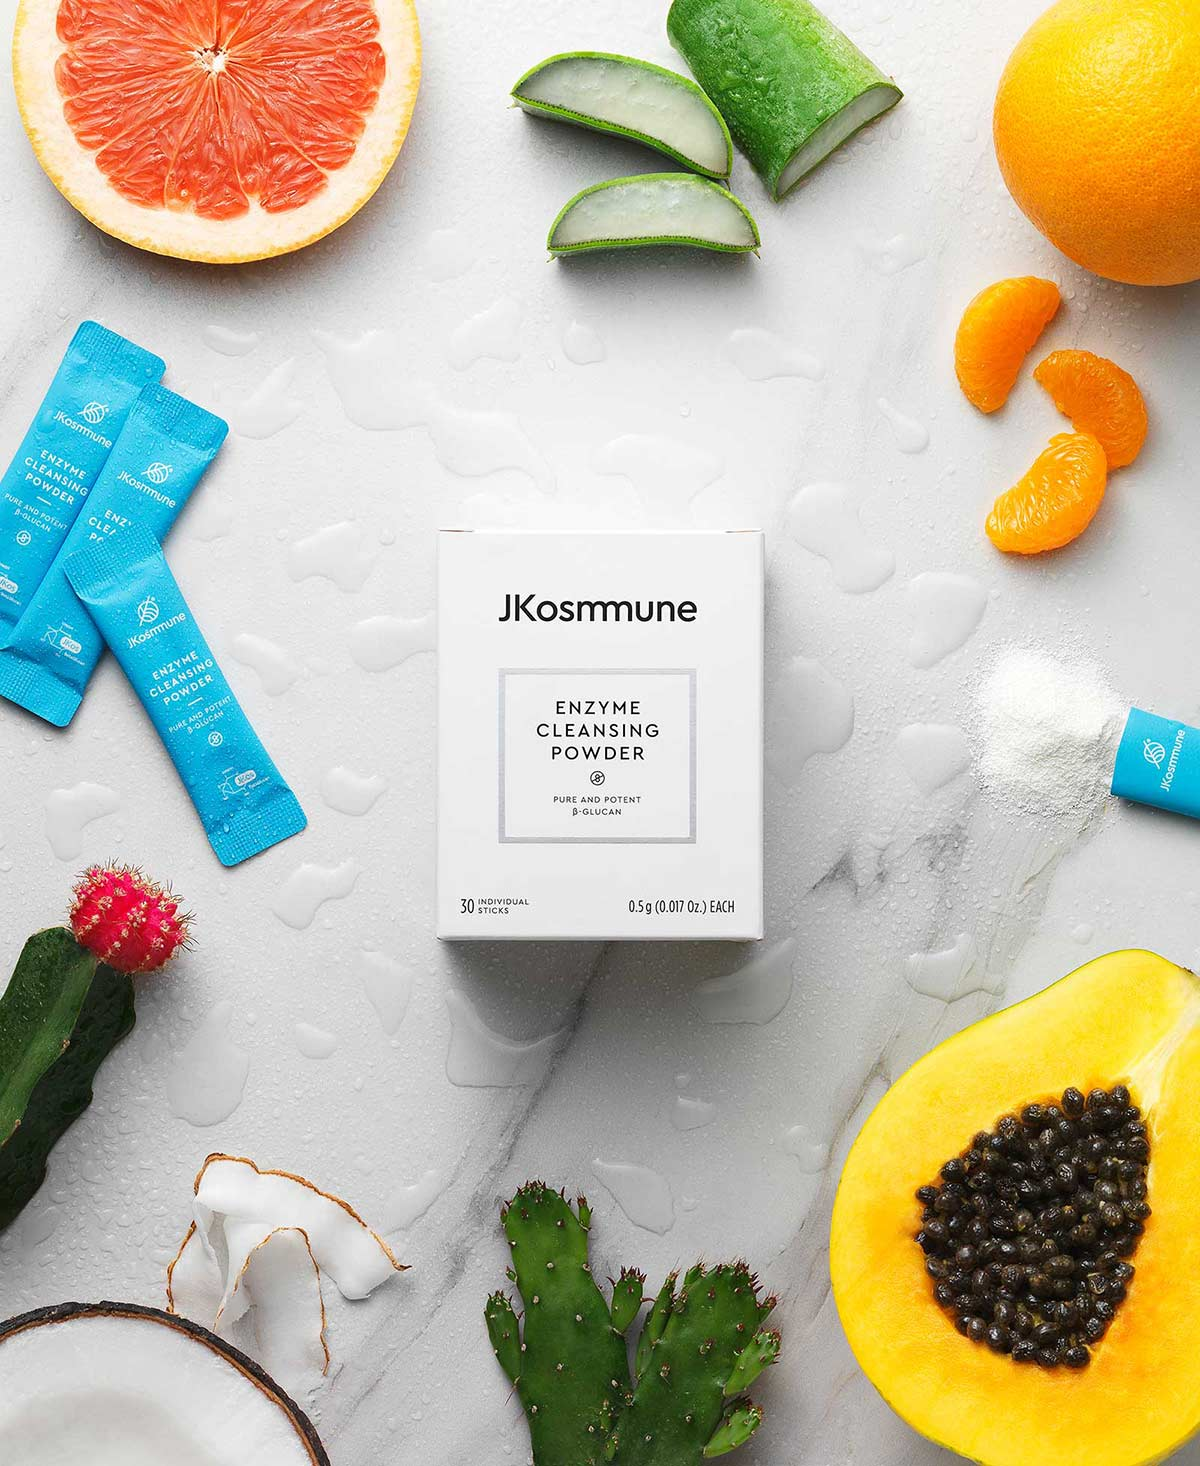 Kosmetic Immunity All natural and clean enzyme cleansing powder with beta glucan, perfect for dry, tight and sensitive skin types